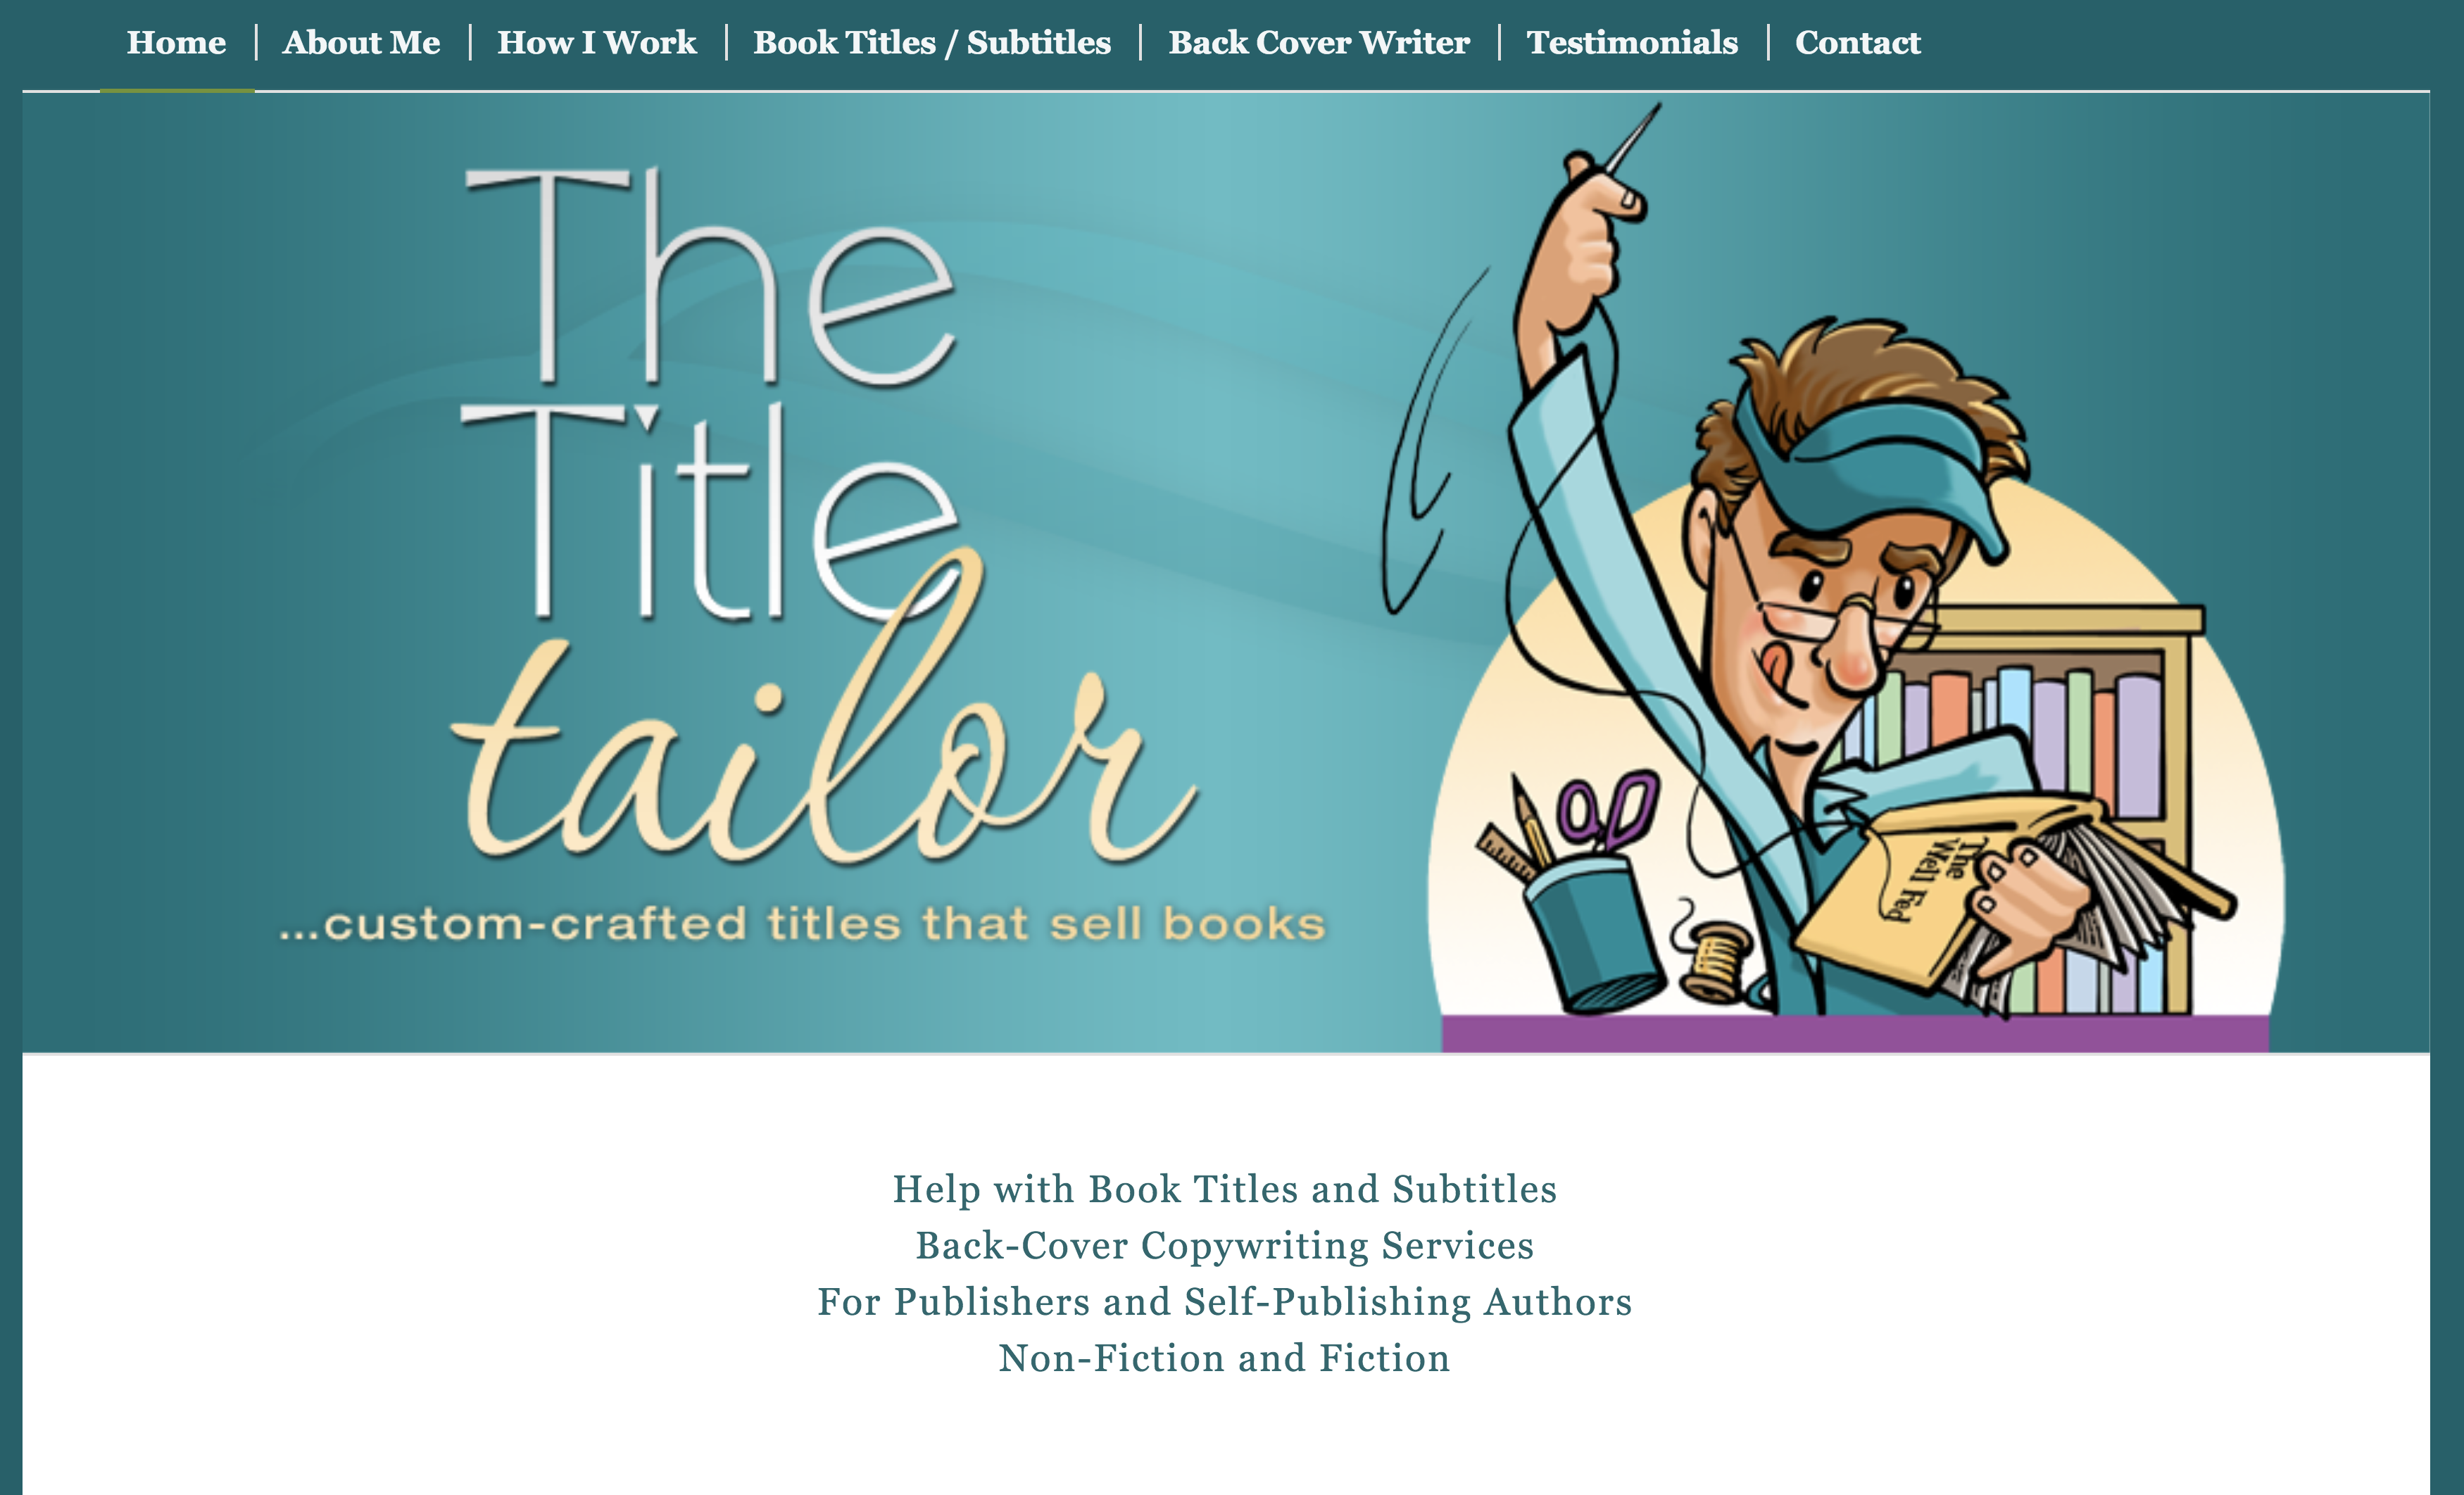 The Title Tailor